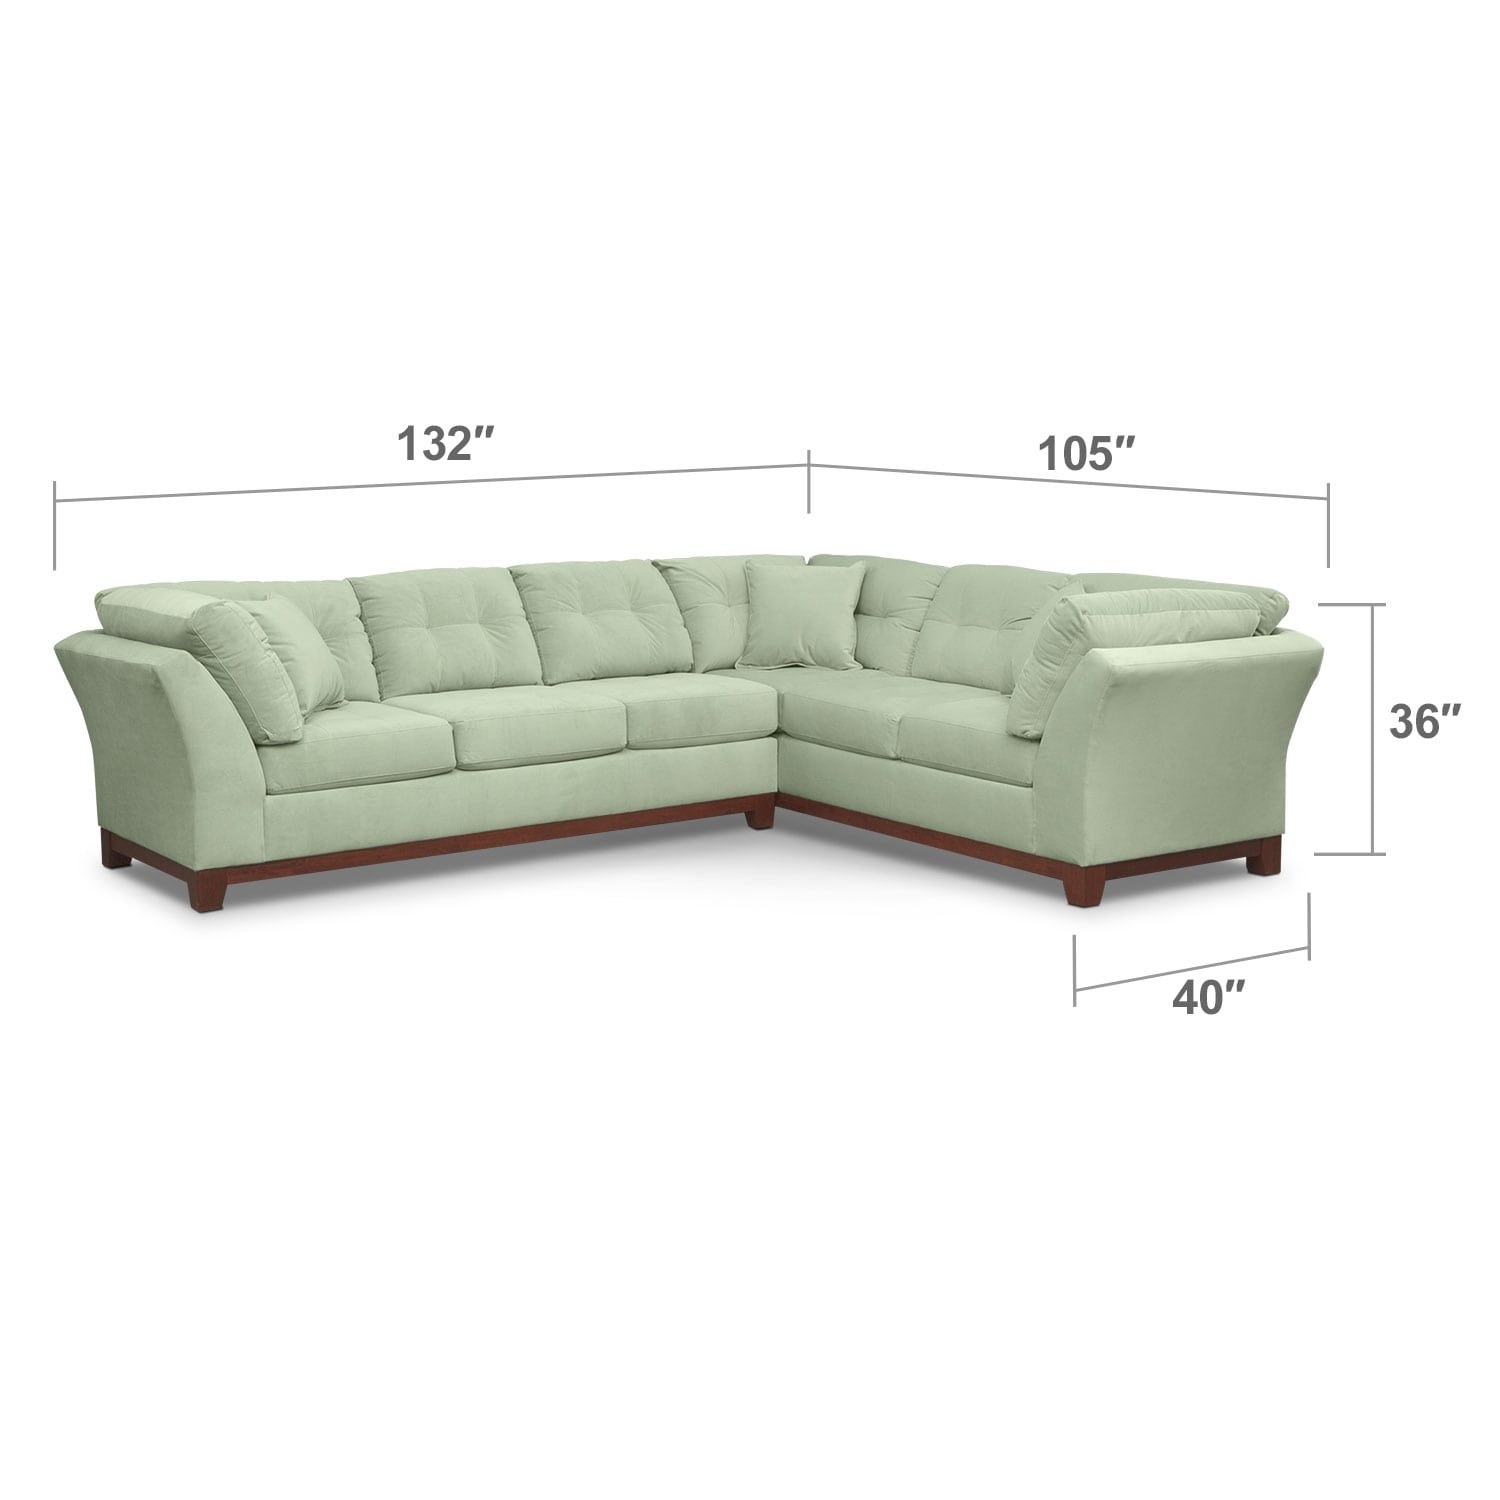 Living Room Furniture - Sebring 2-Piece Sectional with Left-Facing Sofa - Spa